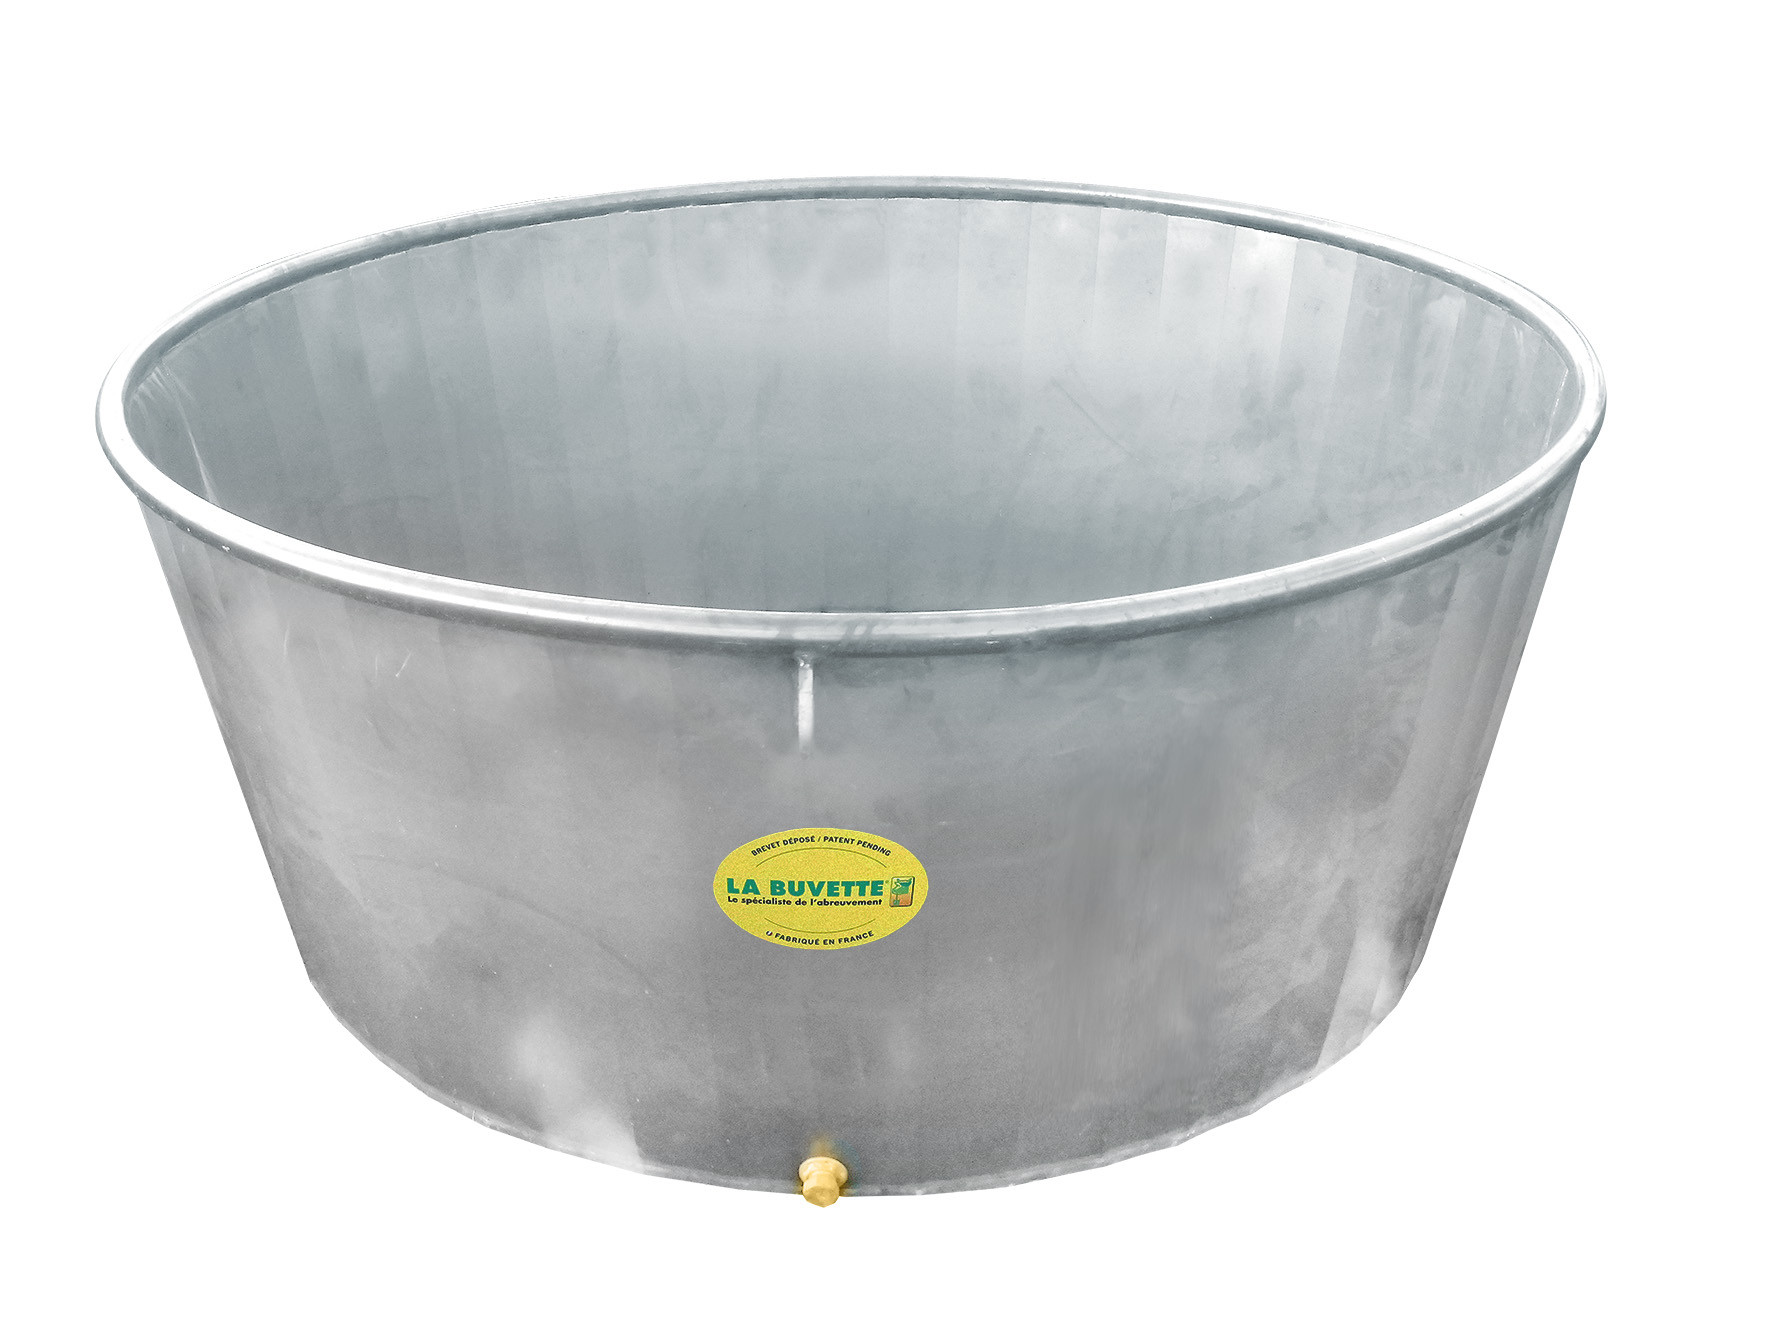 1000 Litres circular trough made of galvanised steel for cattle and dairy cows on pasture.